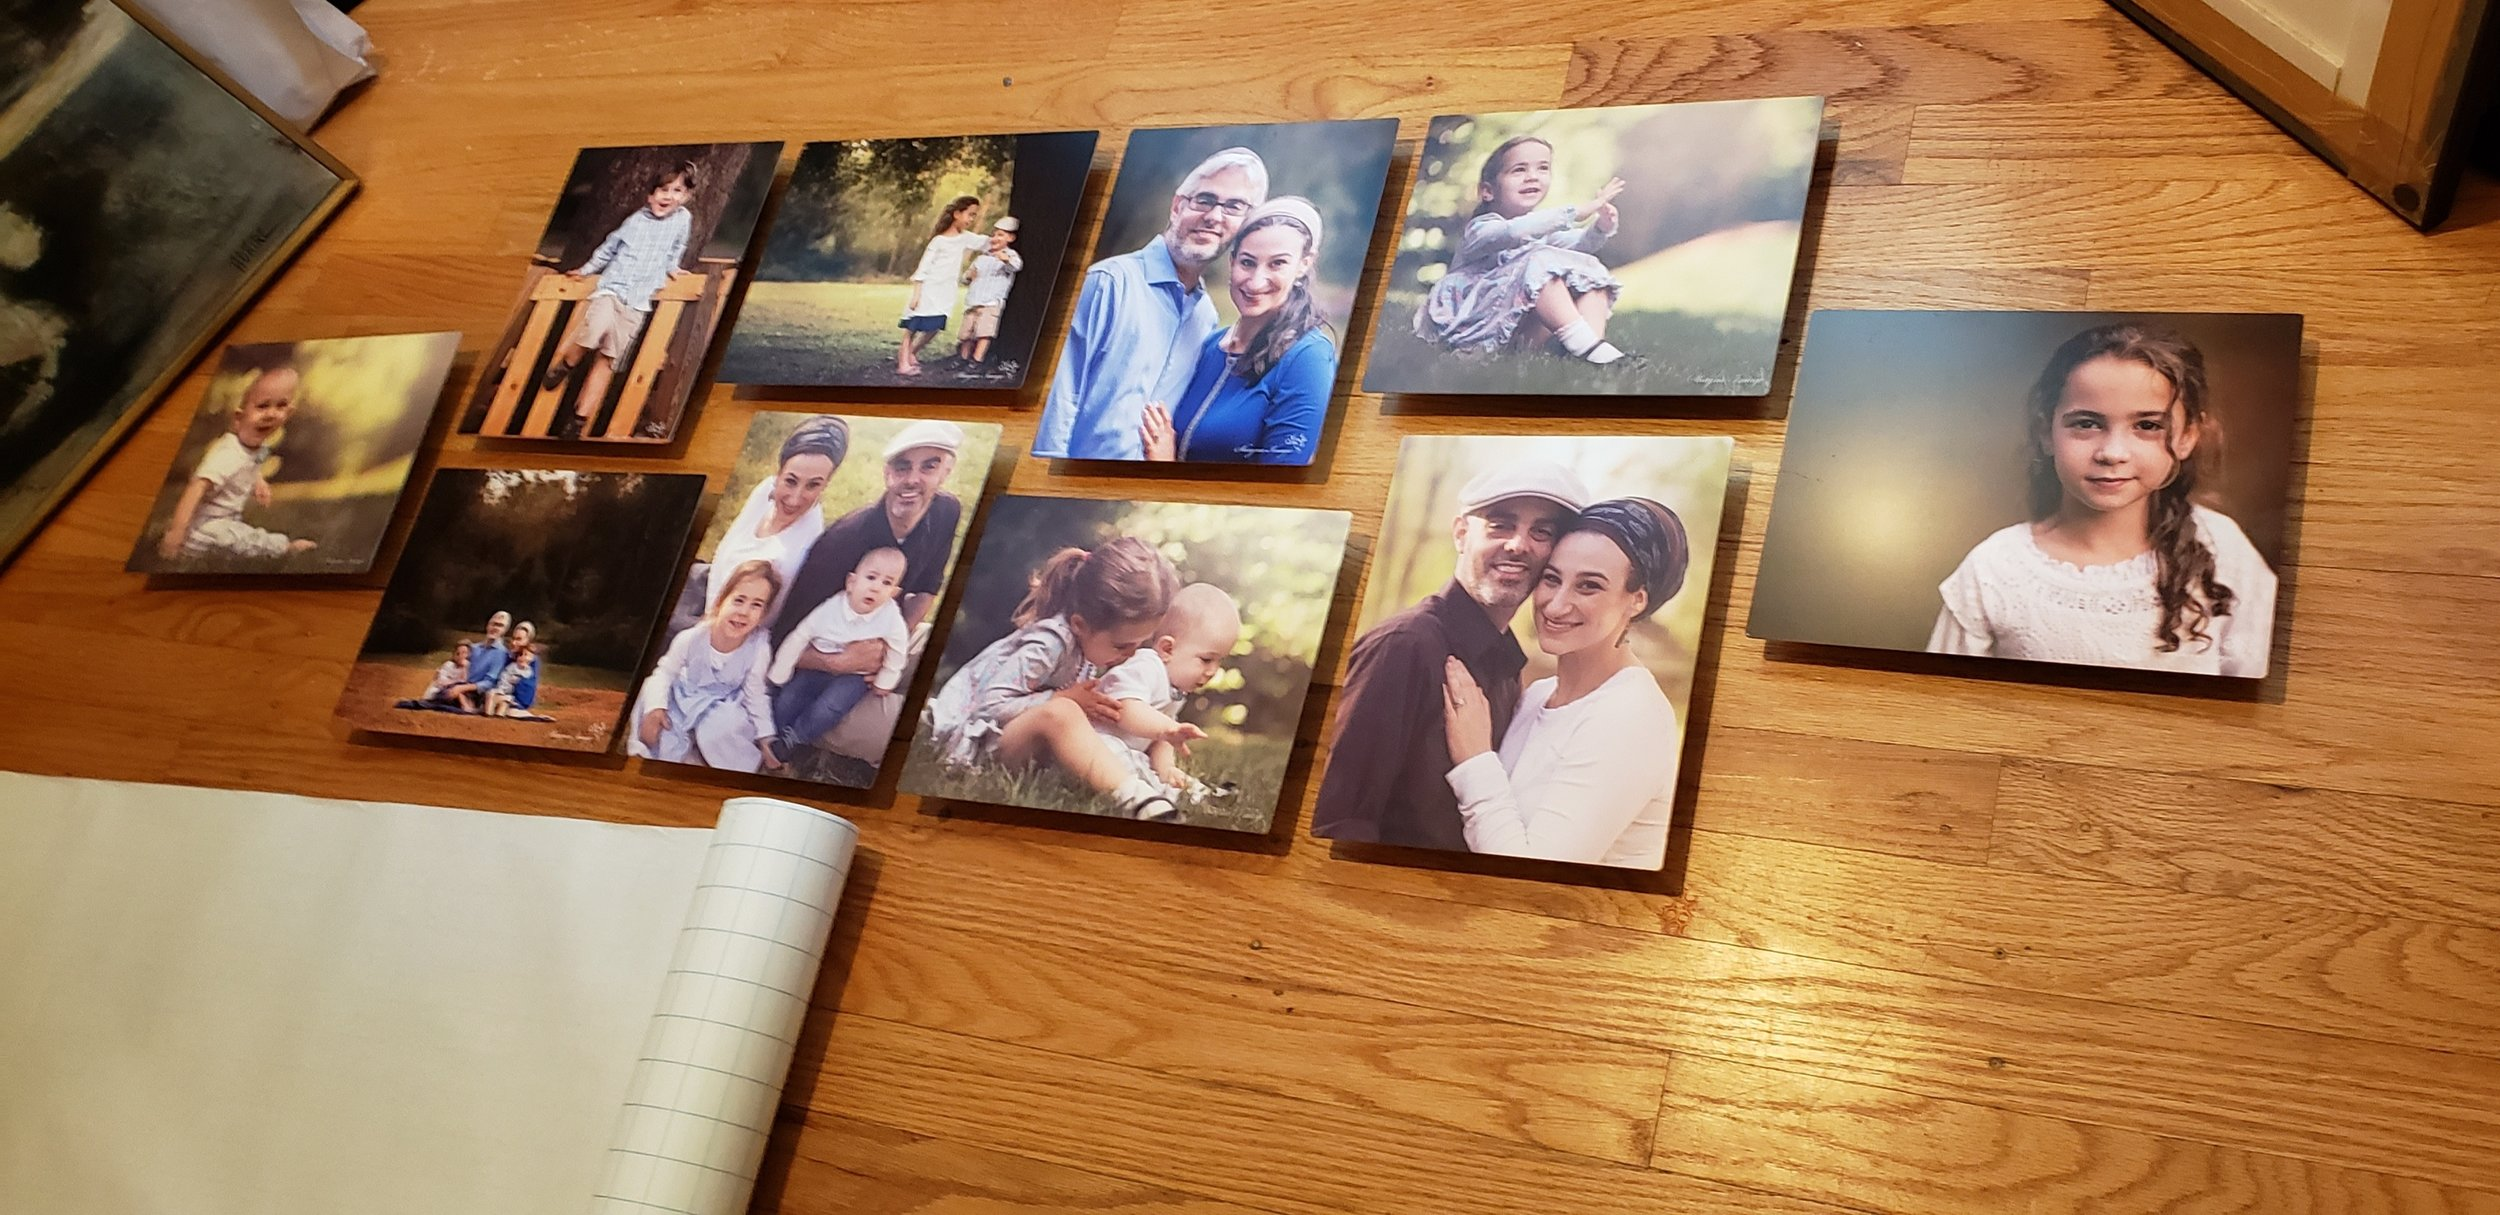 These are images printed on matte standout metals, and assembled from two different family sessions.